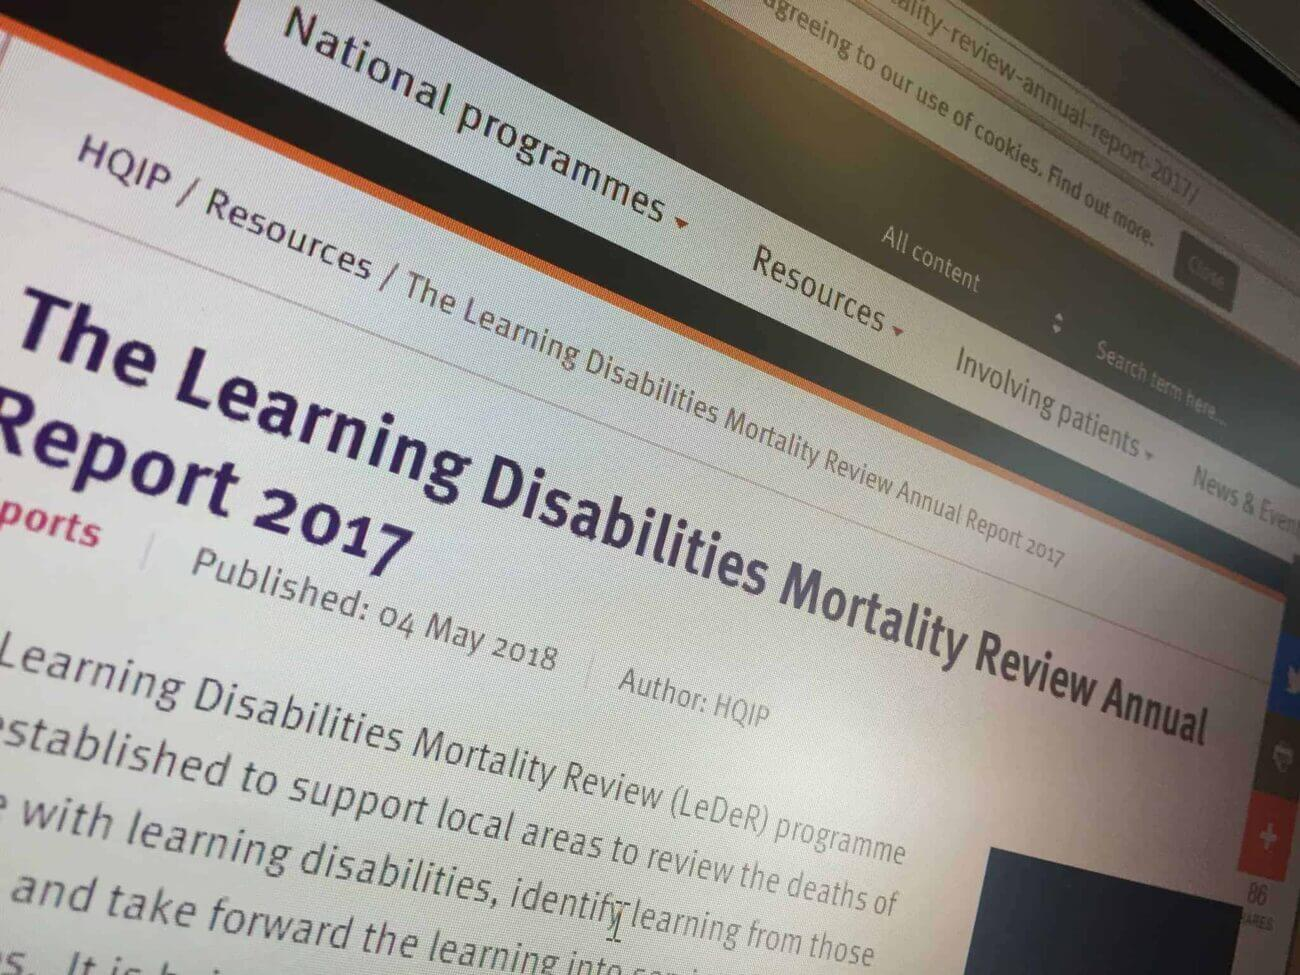 Jeremy Hunt walks out of Learning Disabilities Mortality Review